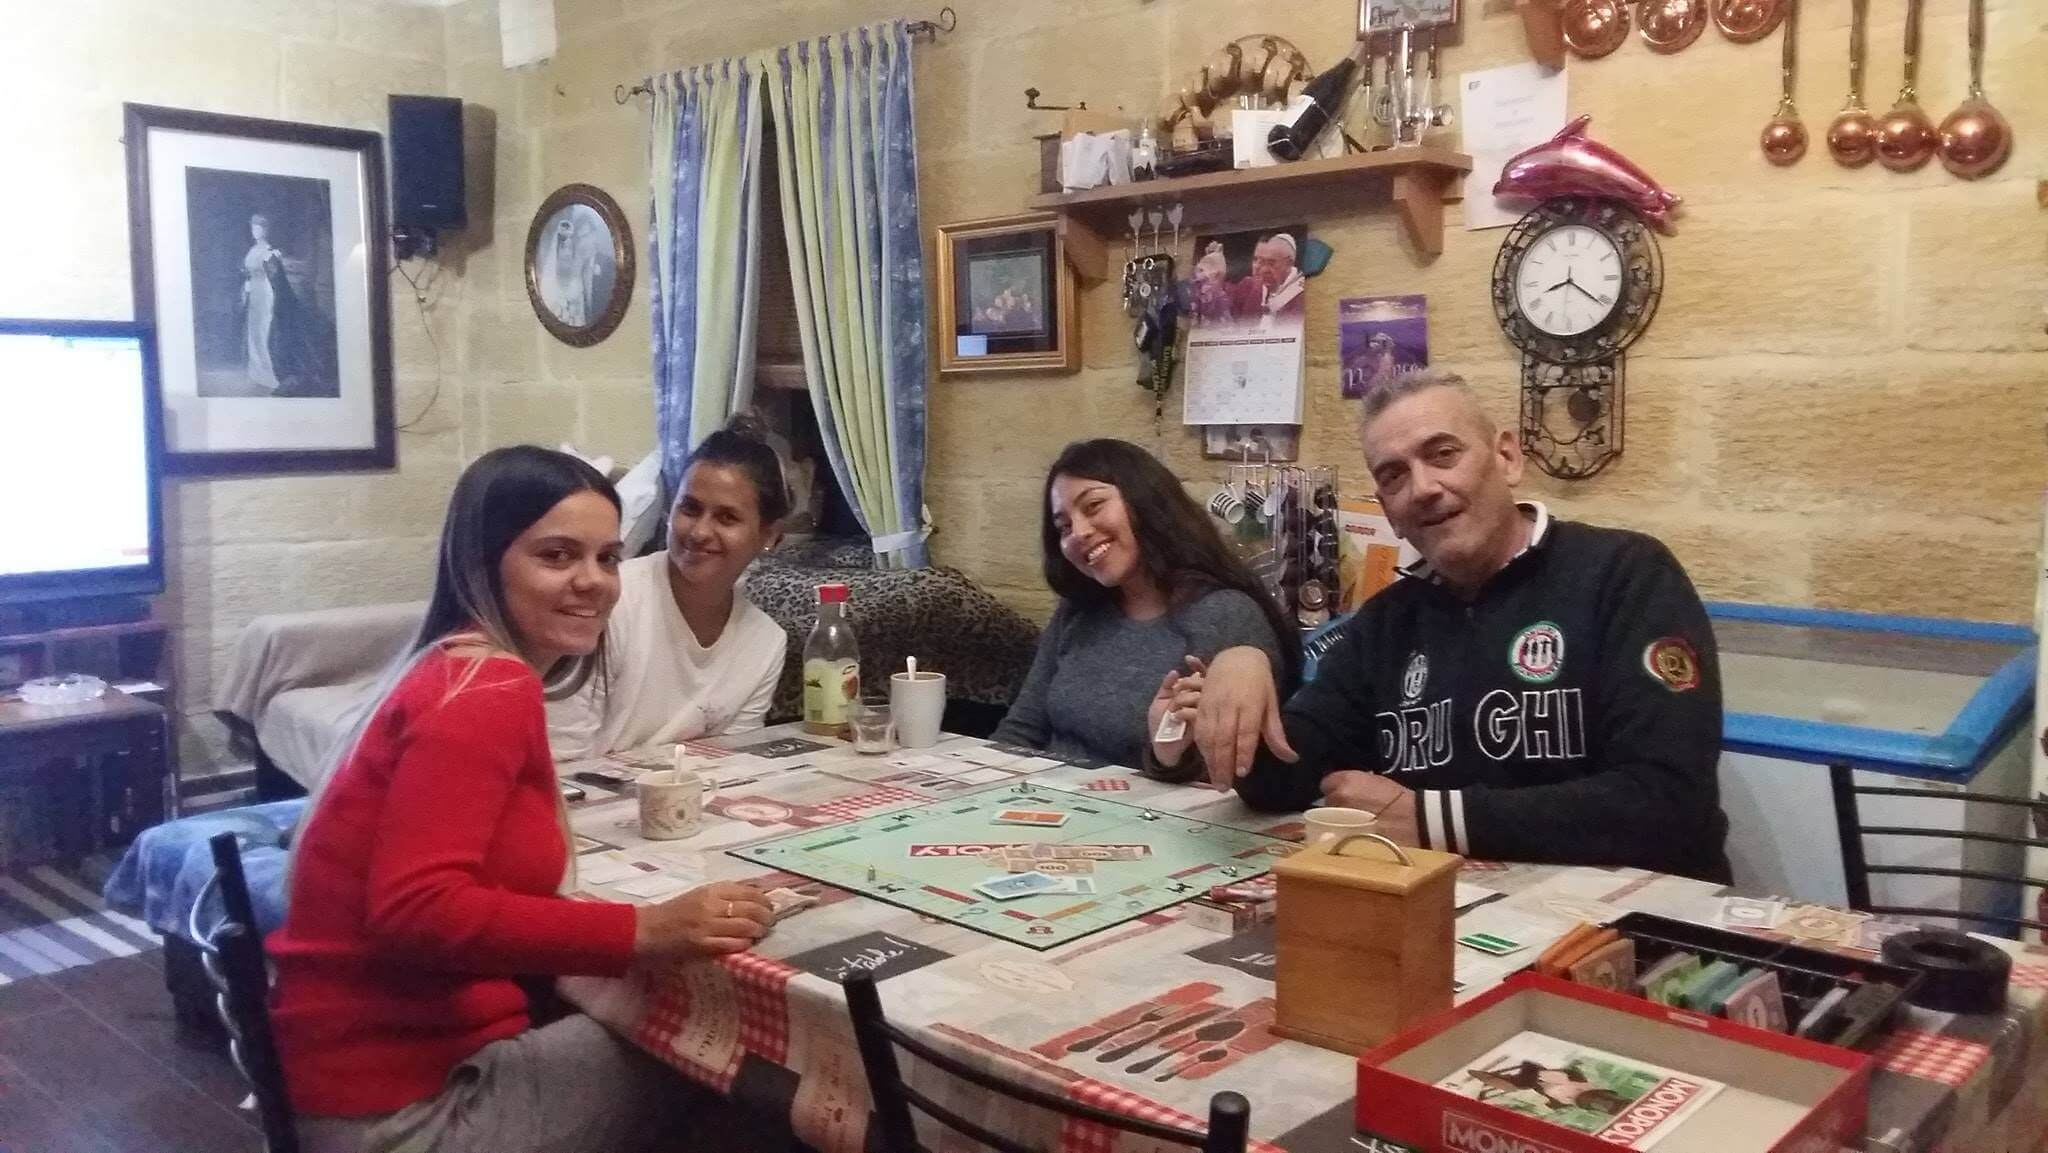 host familly malta playing games